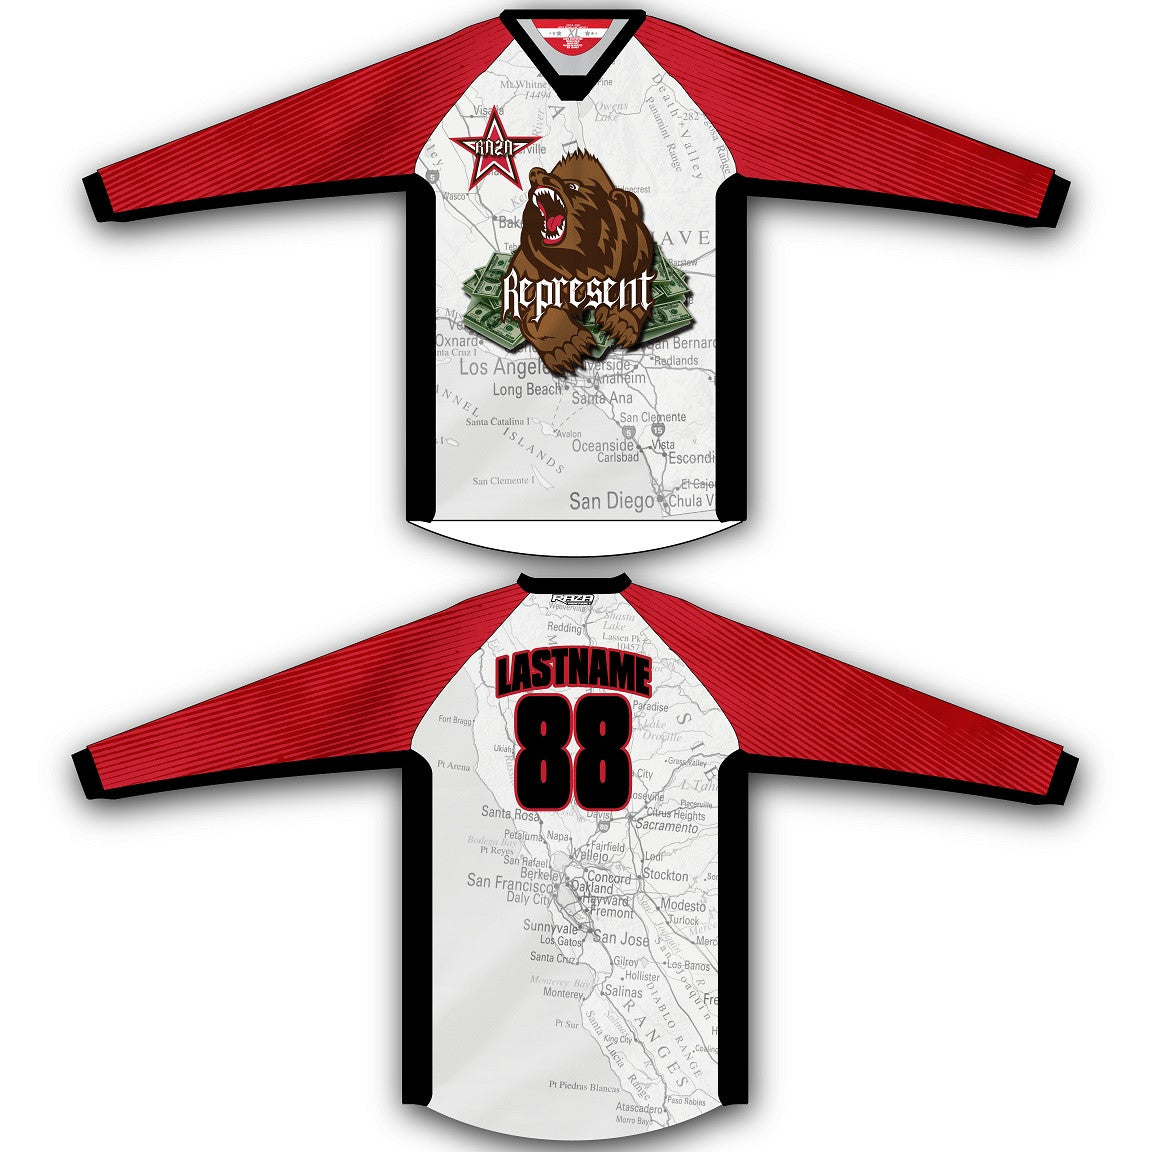 Cali Rep TM2 Jersey - RazaLife - TM2 Jersey - RazaLife - RazaLife - paintball - custom - jerseys - sports - uniforms - woodsball - softball - baseball - basketball - soccer